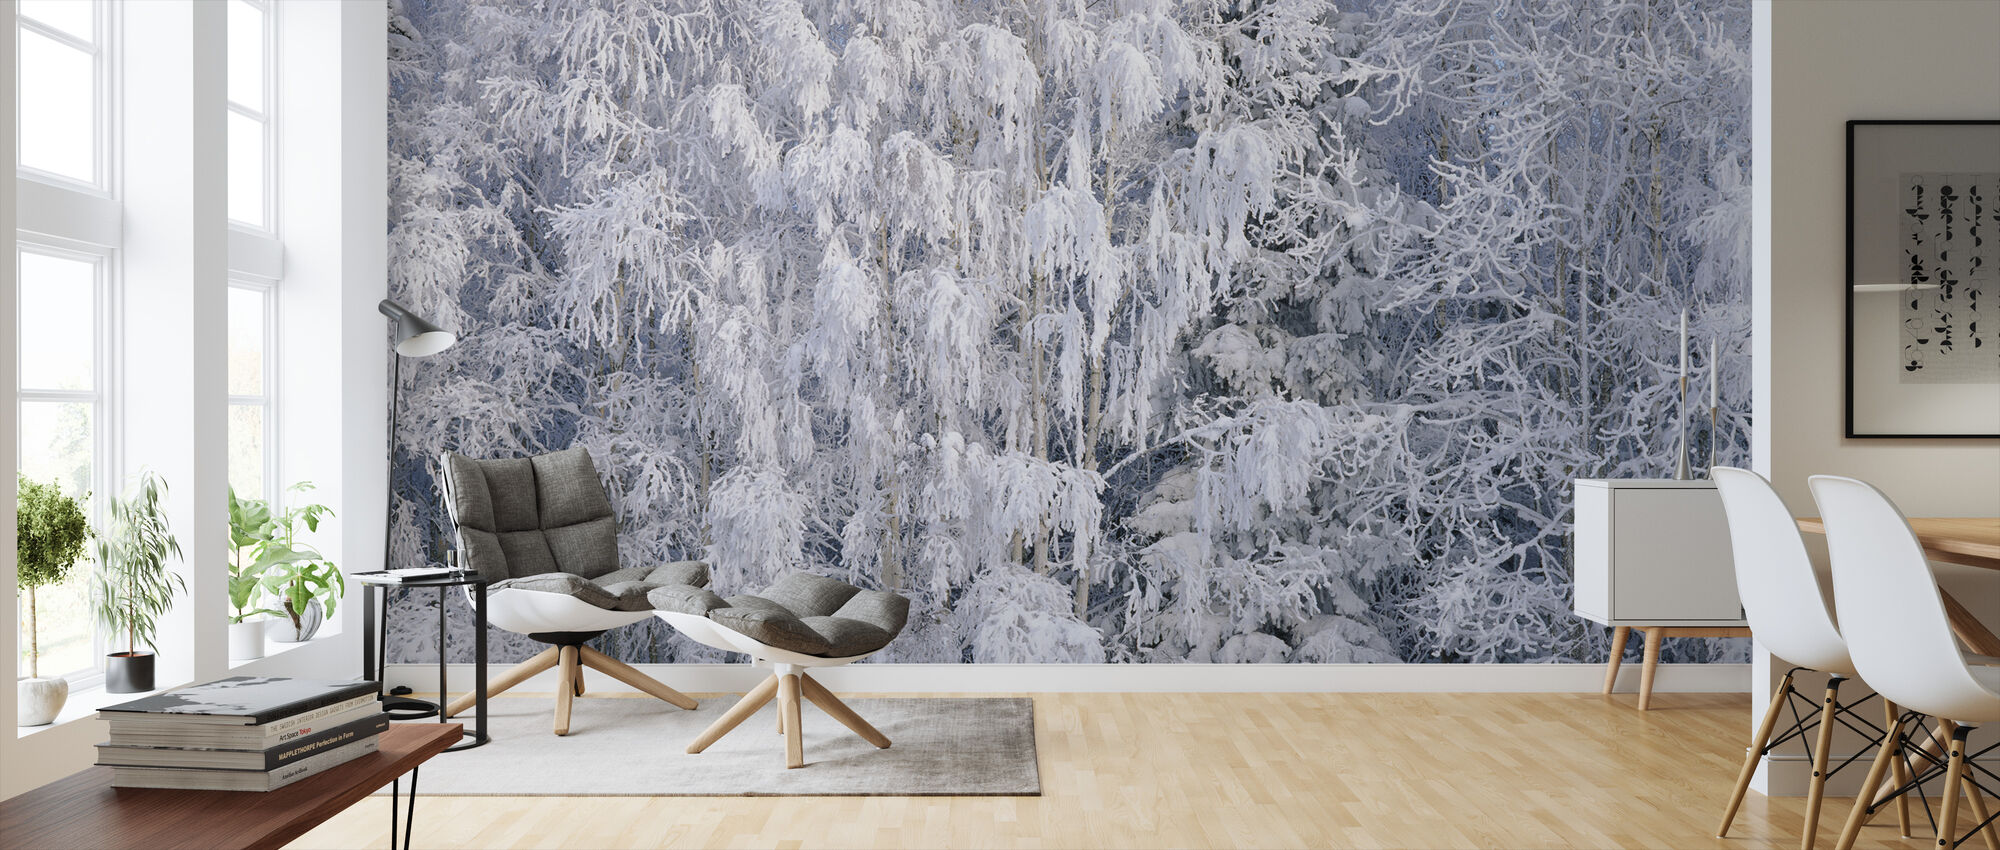 Ice Trees of Salem, Oregon, USA - Wallpaper - Living Room